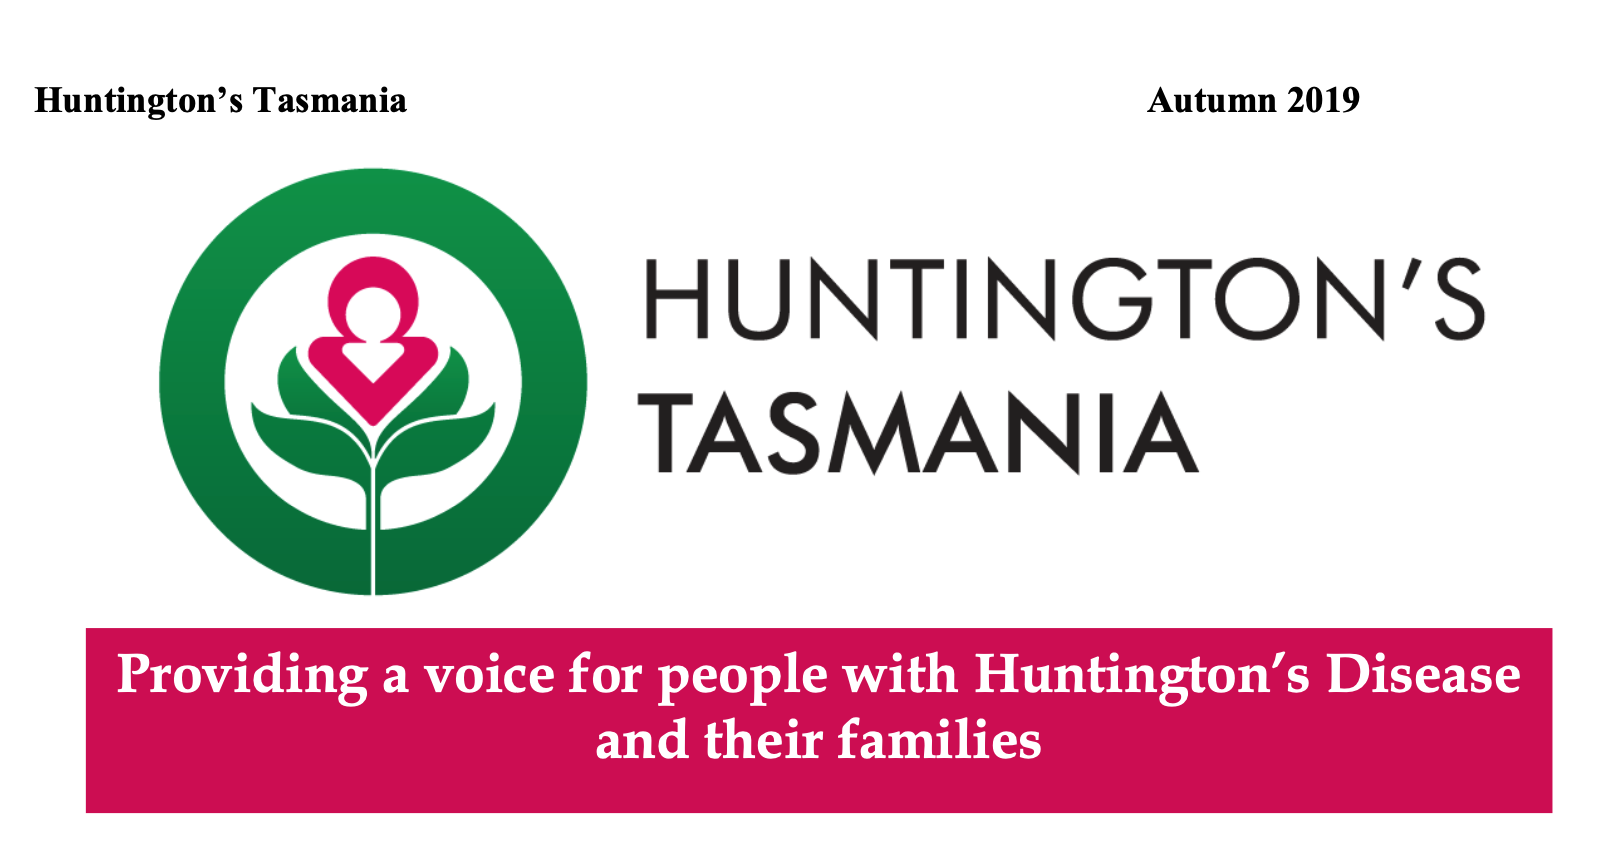 Huntington's Tasmania 2019 Newsletter